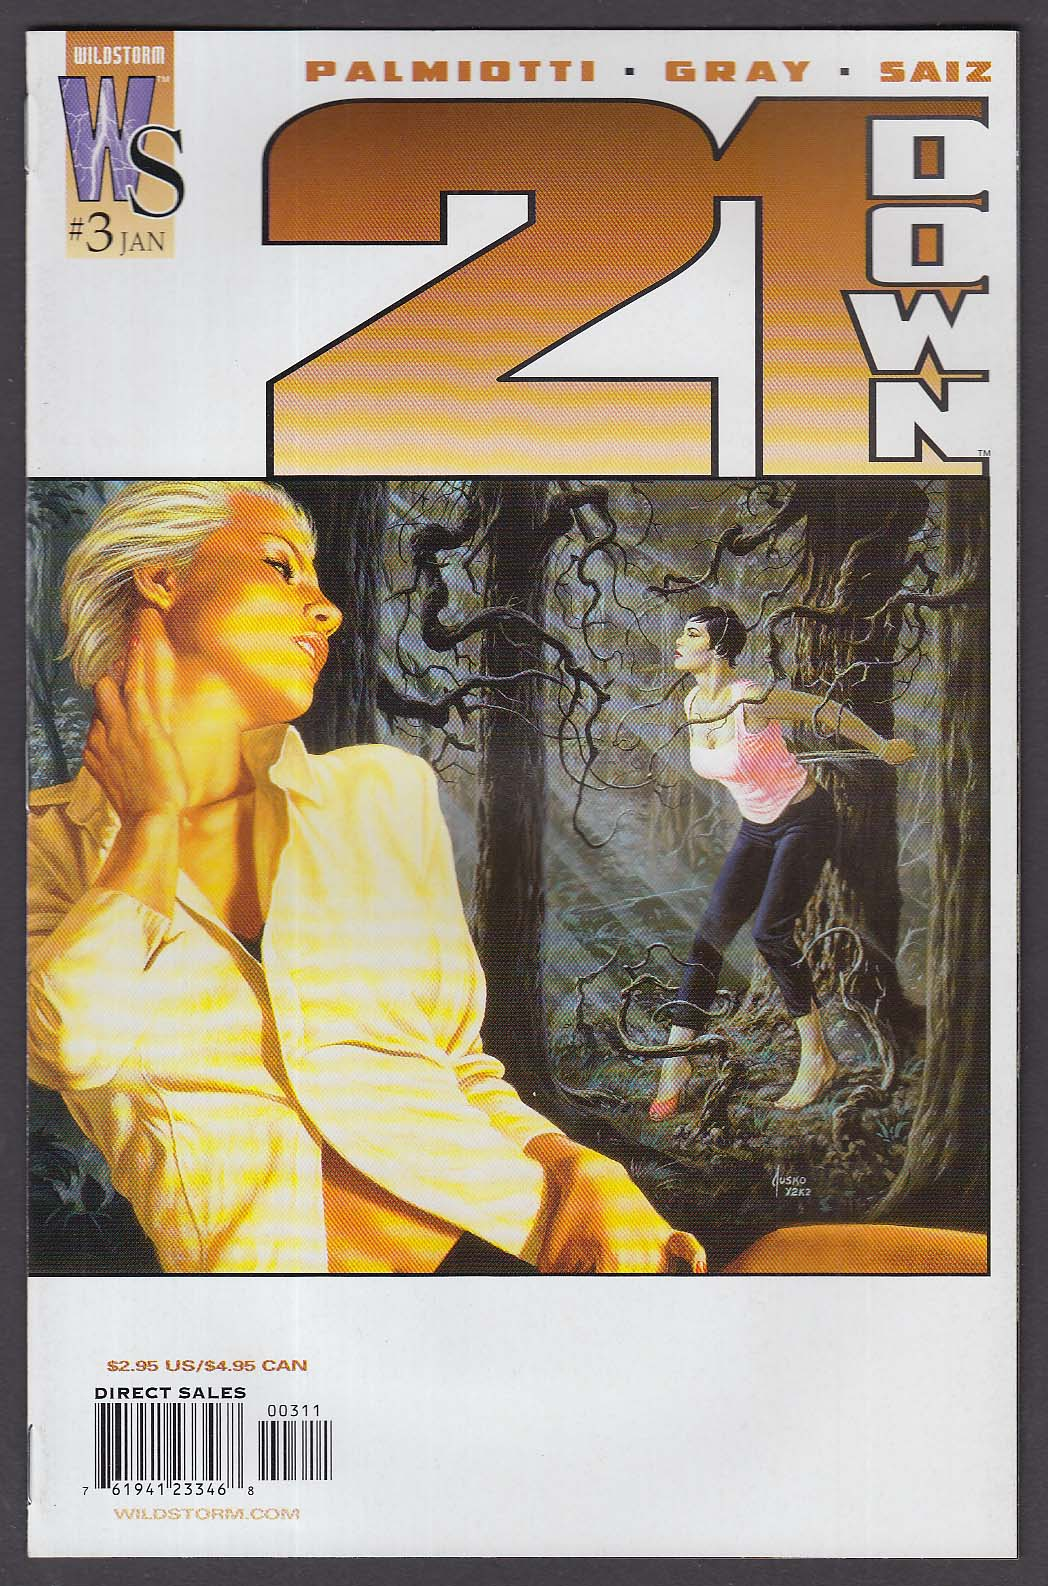 21 DOWN #3 WildStorm comic book 1 2003